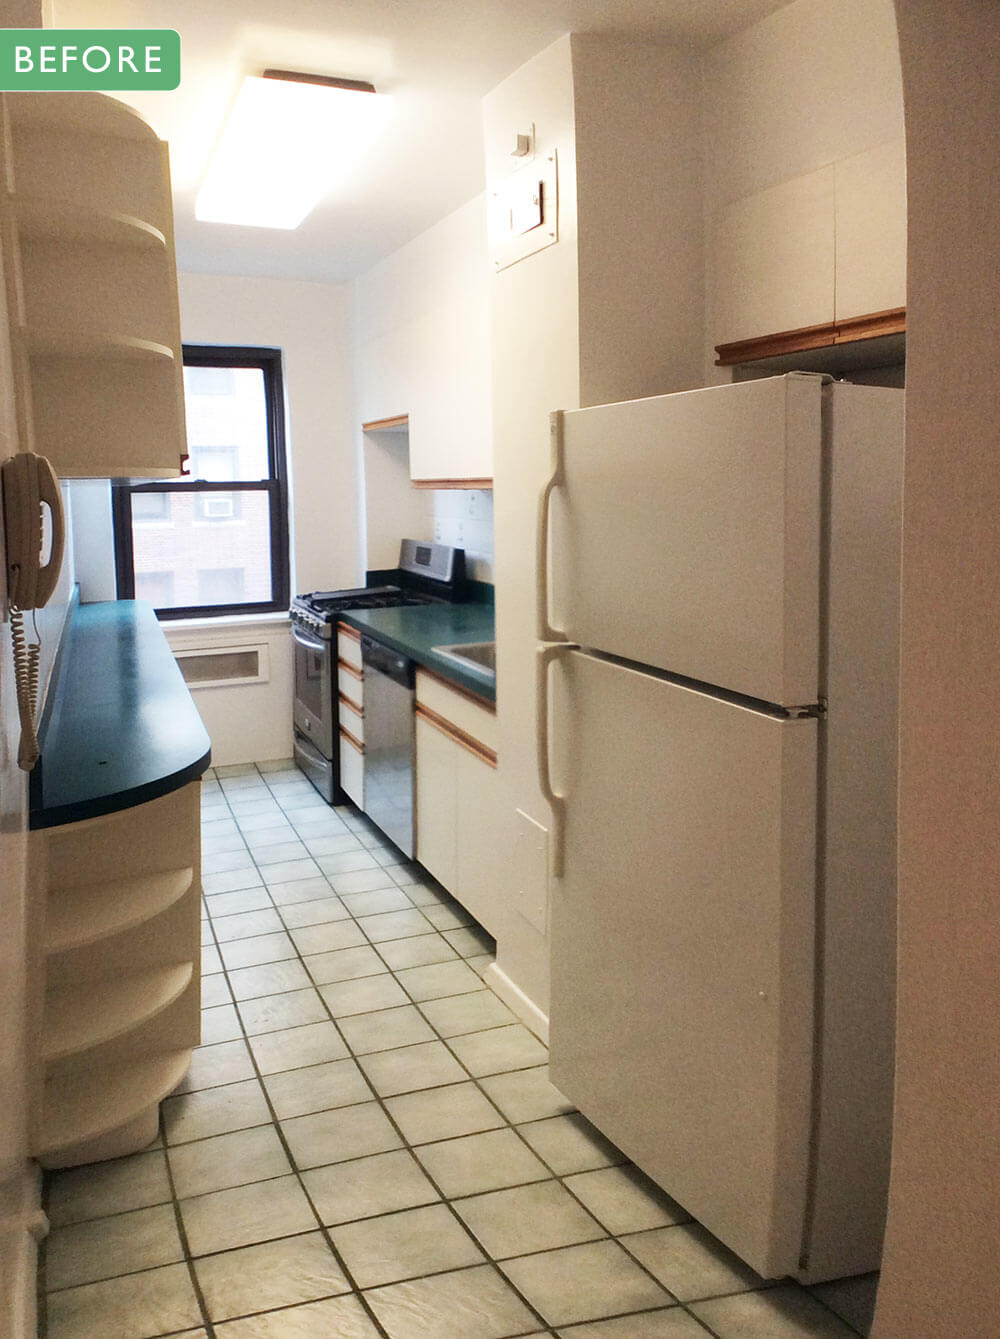 Bathroom And Kitchen Remodeling For A Bi Level Home: Ben Sander Transforms A Blah 1980s Kitchen And Bathroom